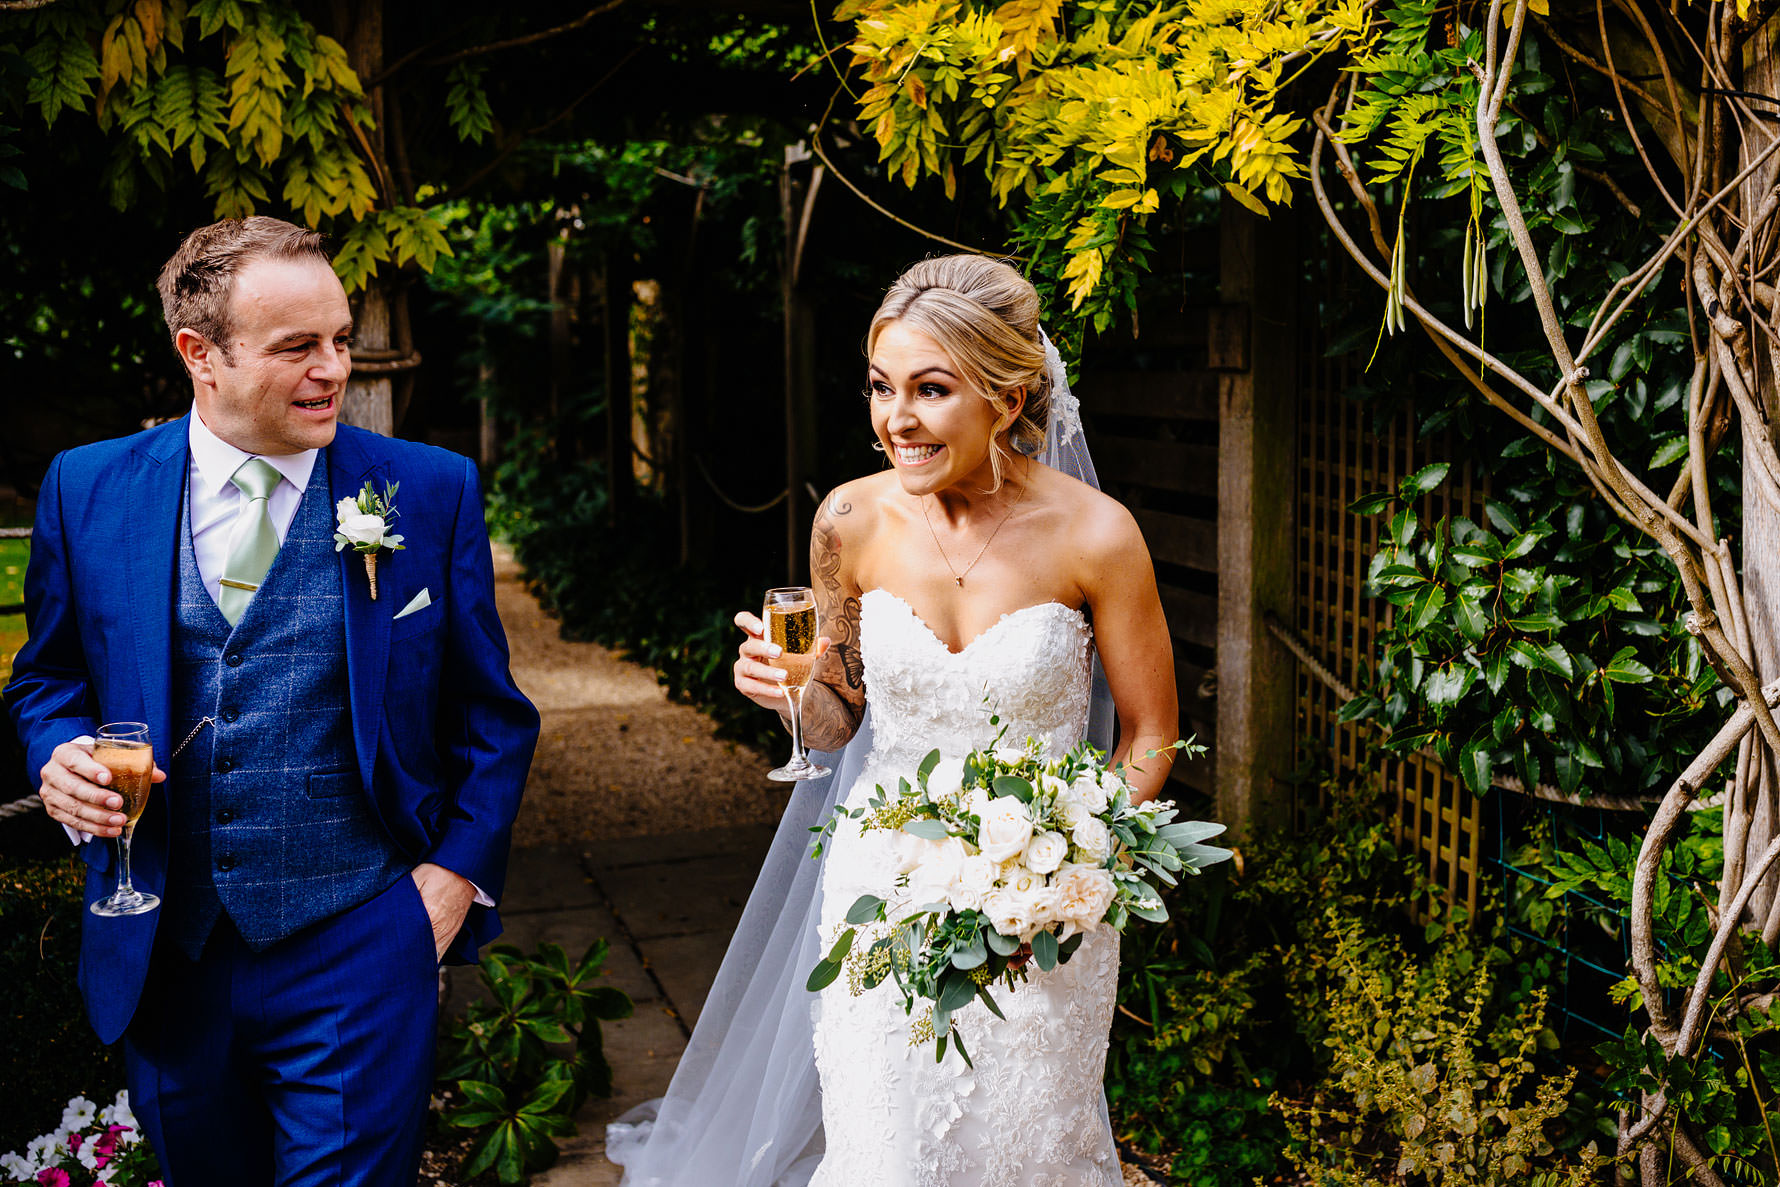 a bride with champagne in her hand